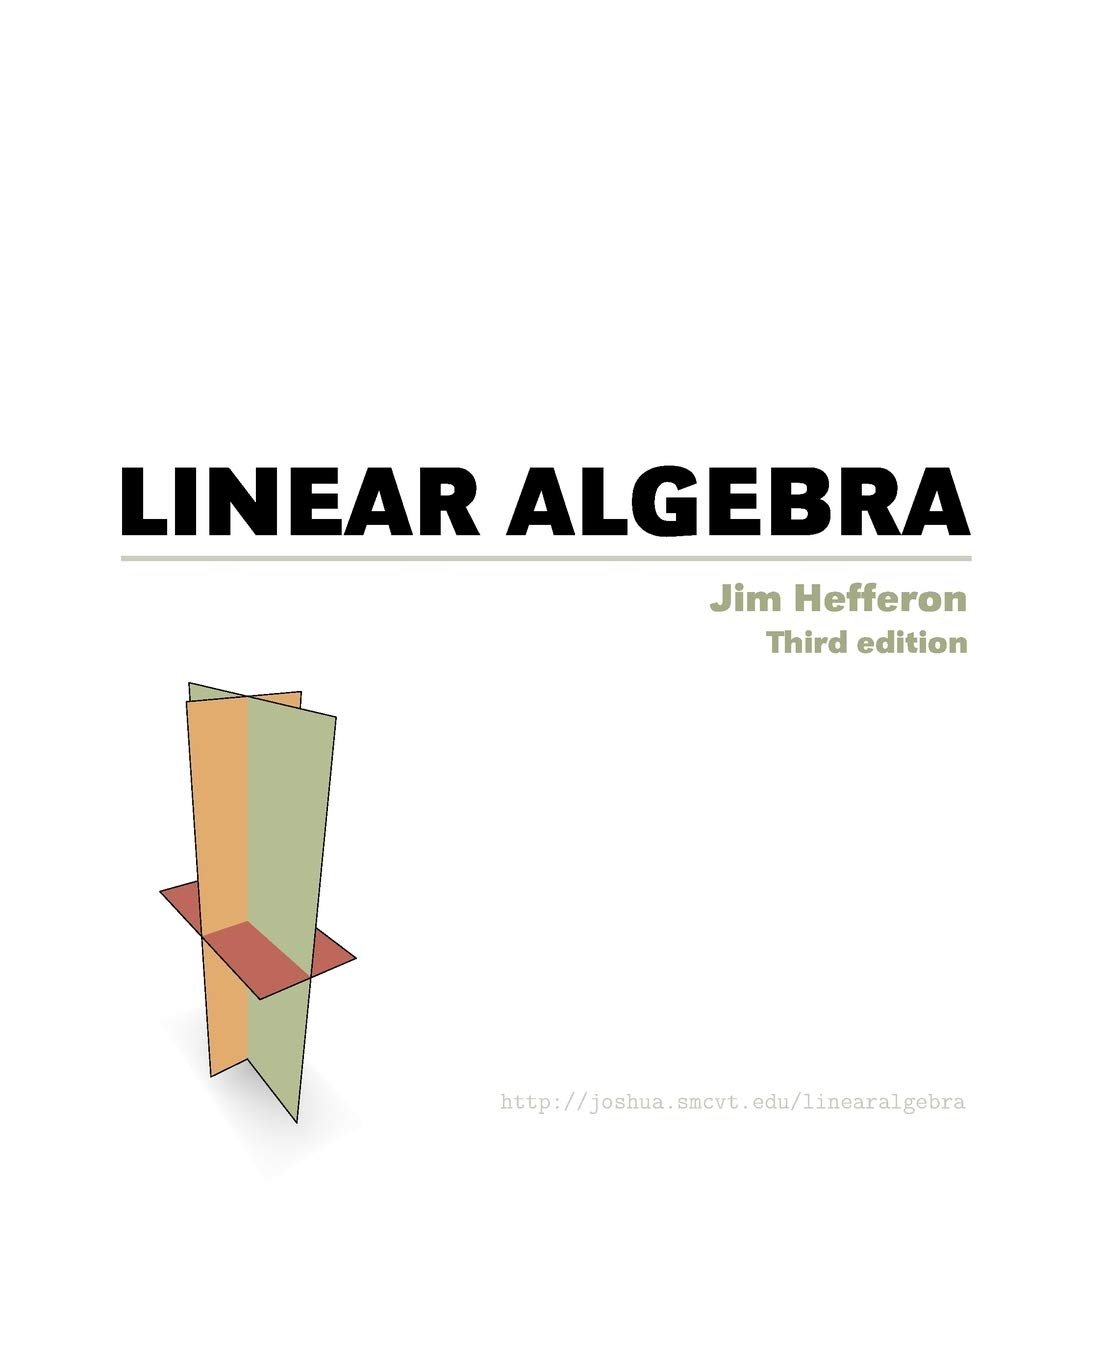 Linear Algebra Hefferon Jim 9781944325039 Amazon Com Books